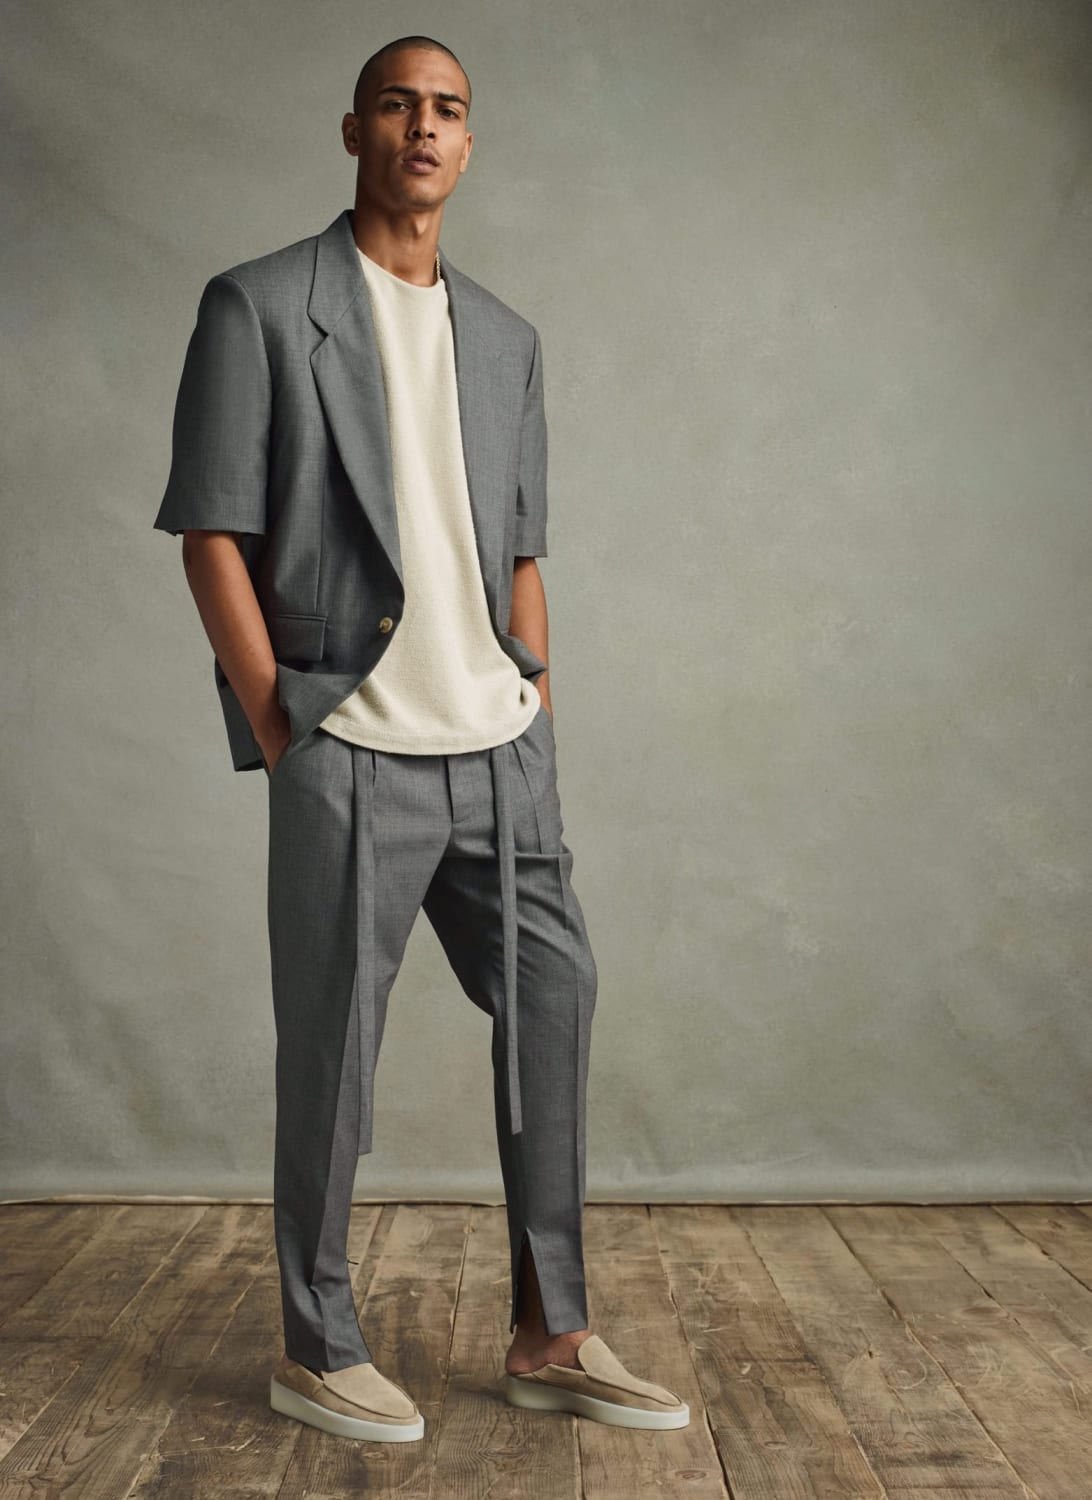 Seventh Collection Lookbook Look 36